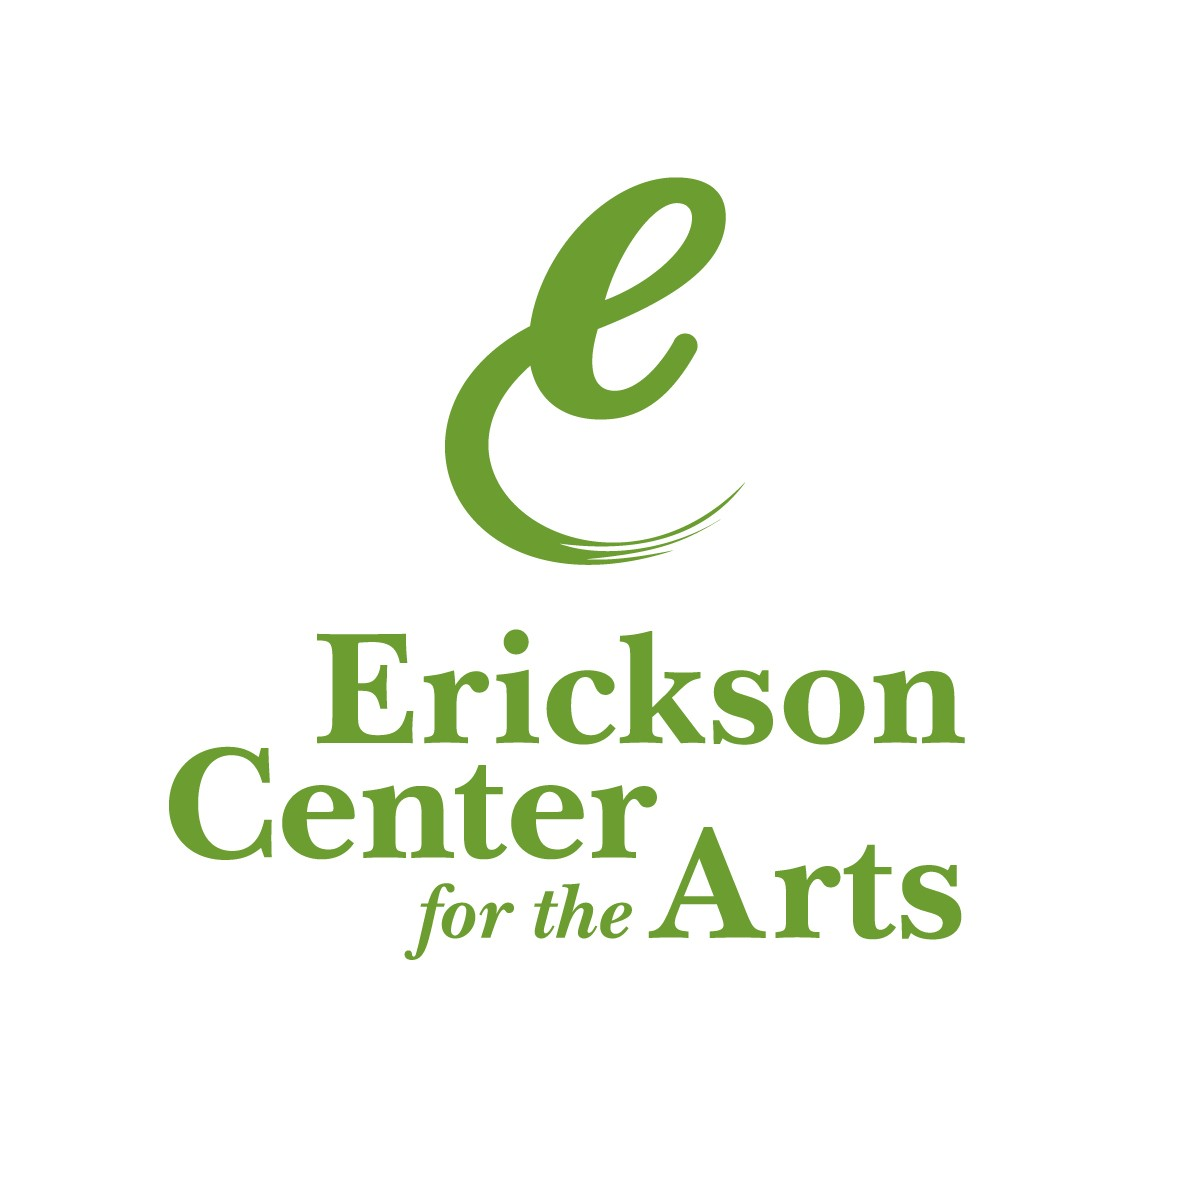 "Erickson Center for the Arts ""Marking a Decade"" Gallery Exhibit"